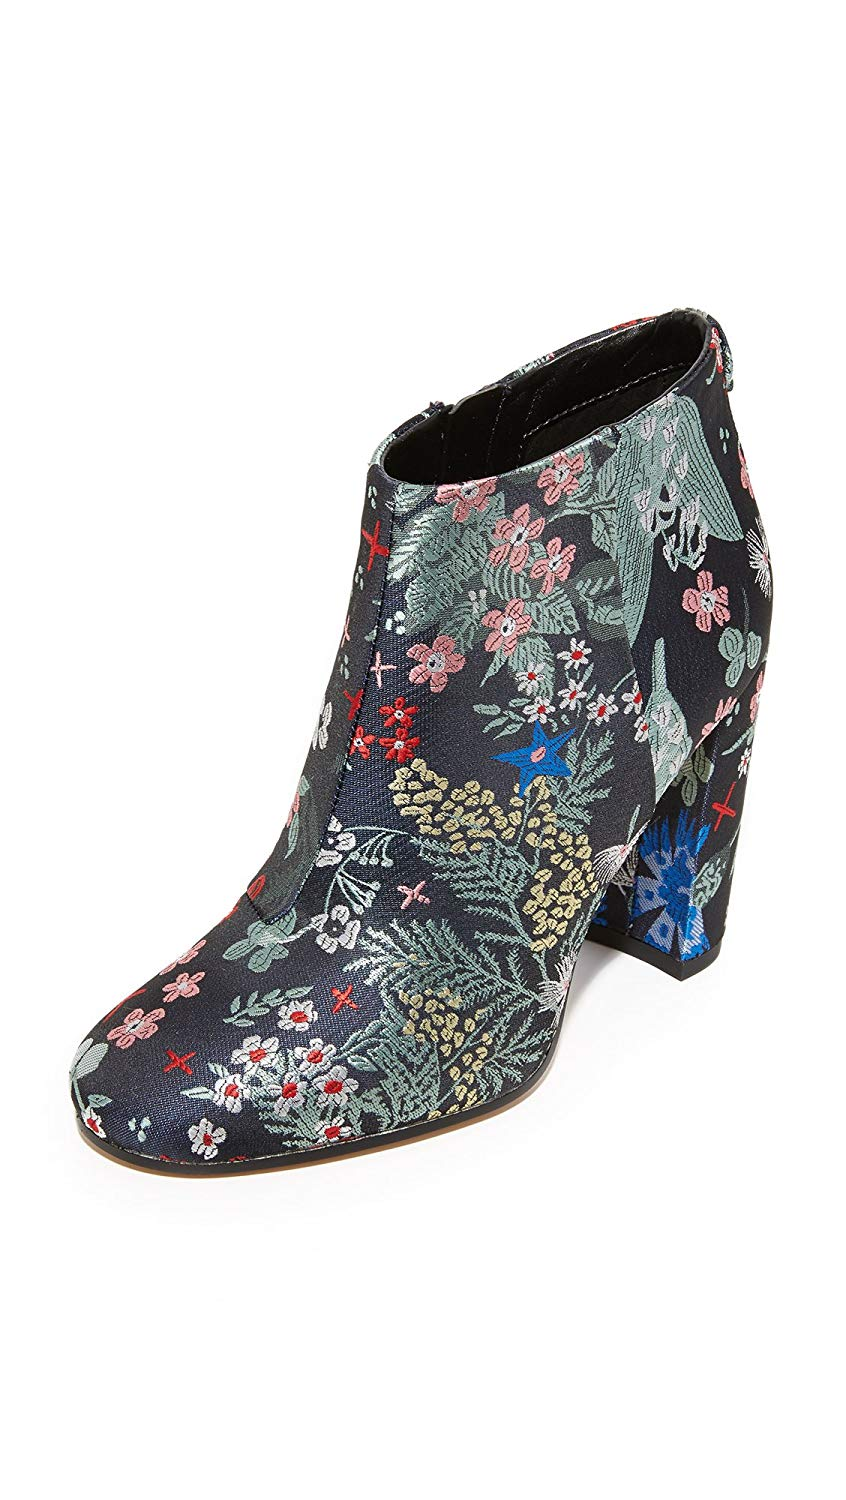 db4ffafa1d2a0 Sam Edelman Women s Cambell Ankle Bootie